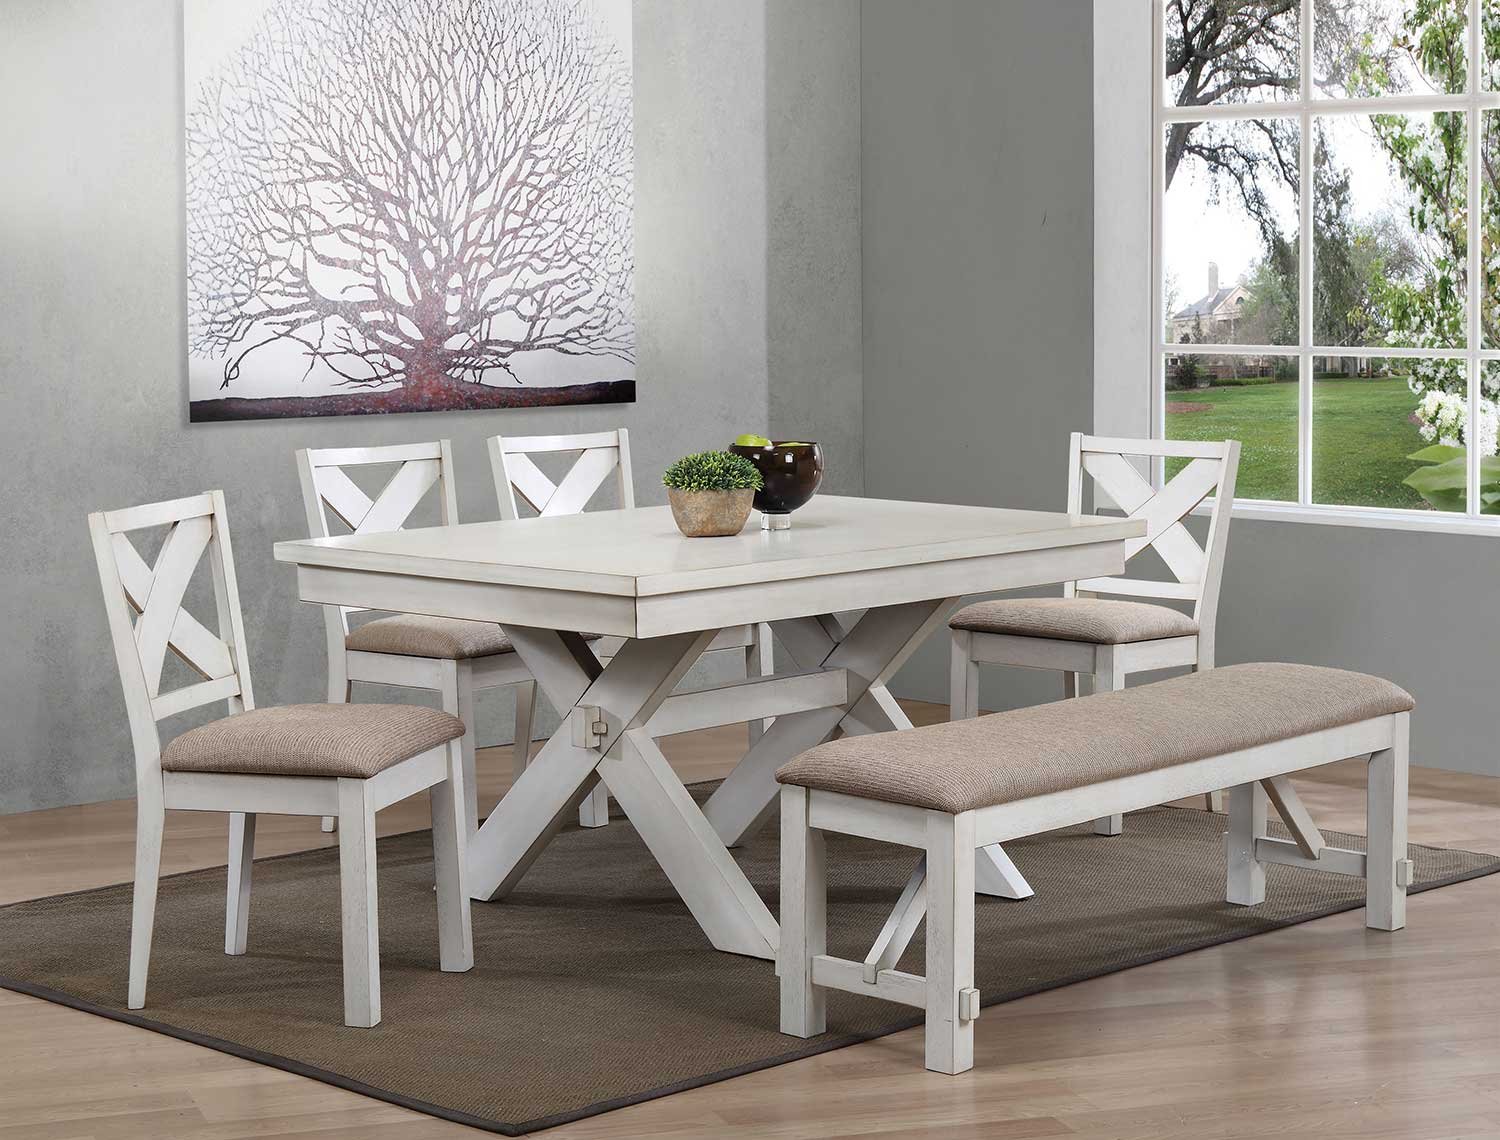 Acme Apollo Dining Set - Antique White